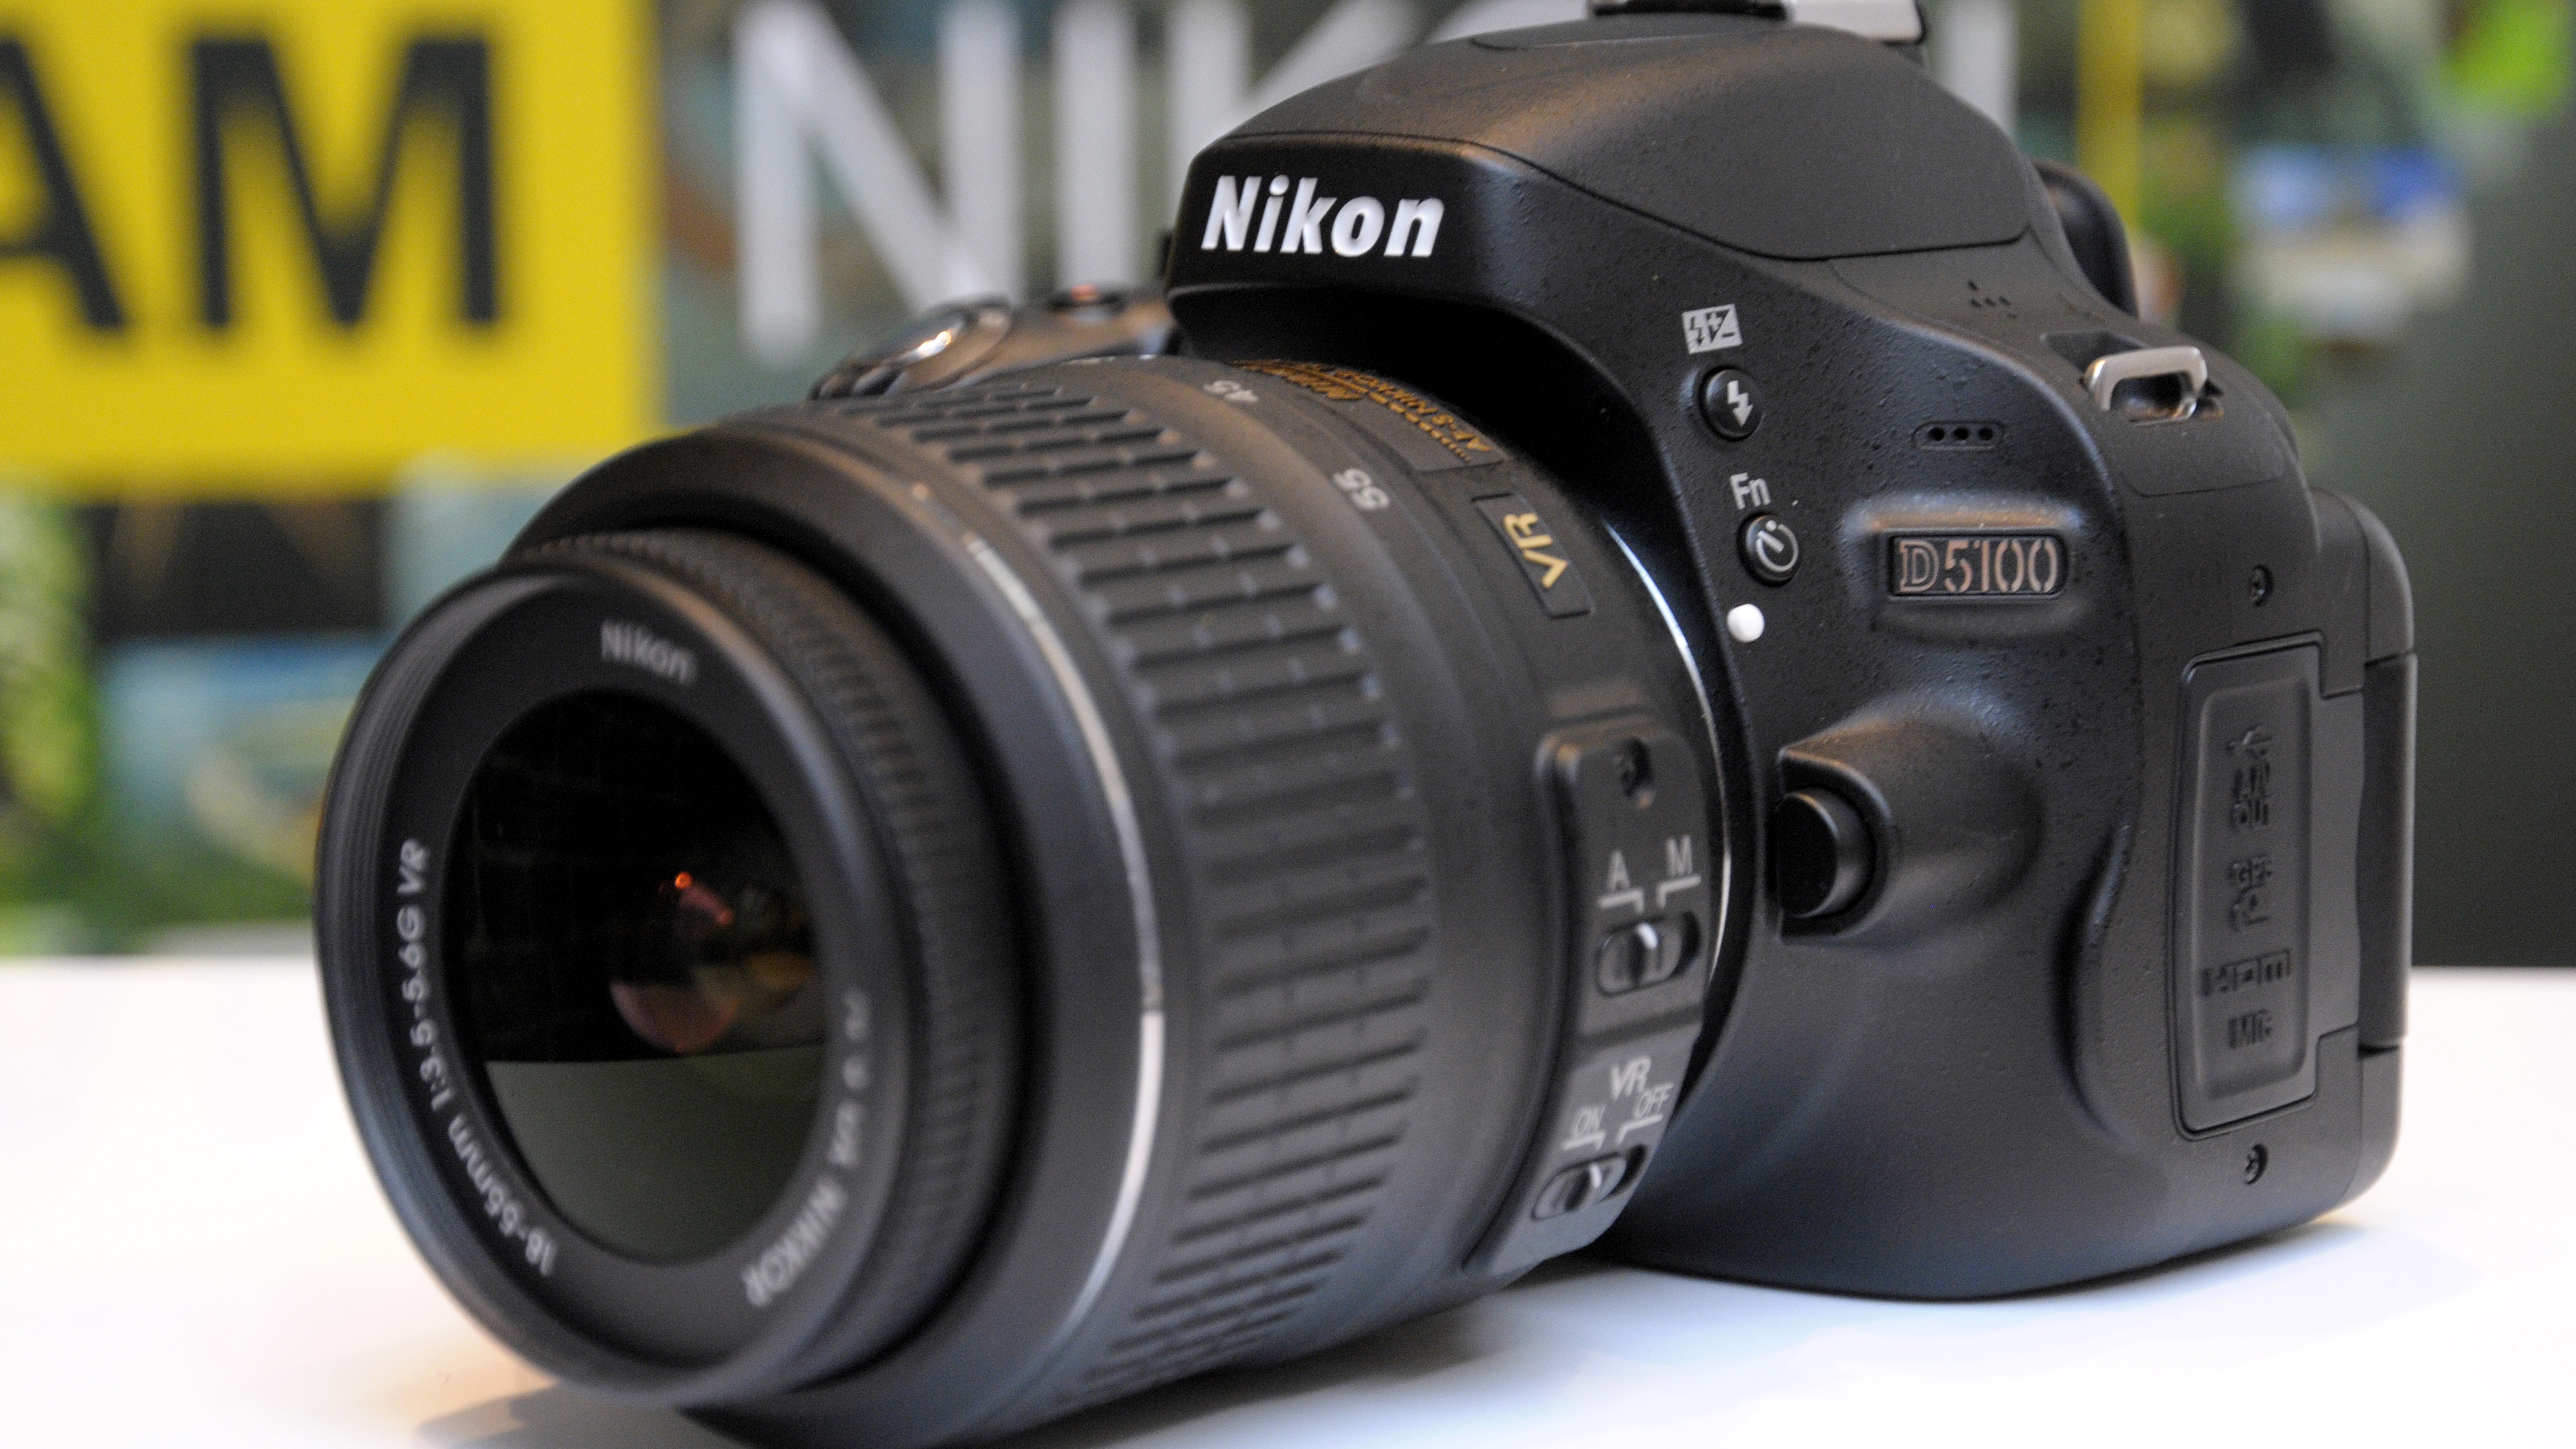 Reflex Camera Nikon D5100 Kit: review, features, reviews 73